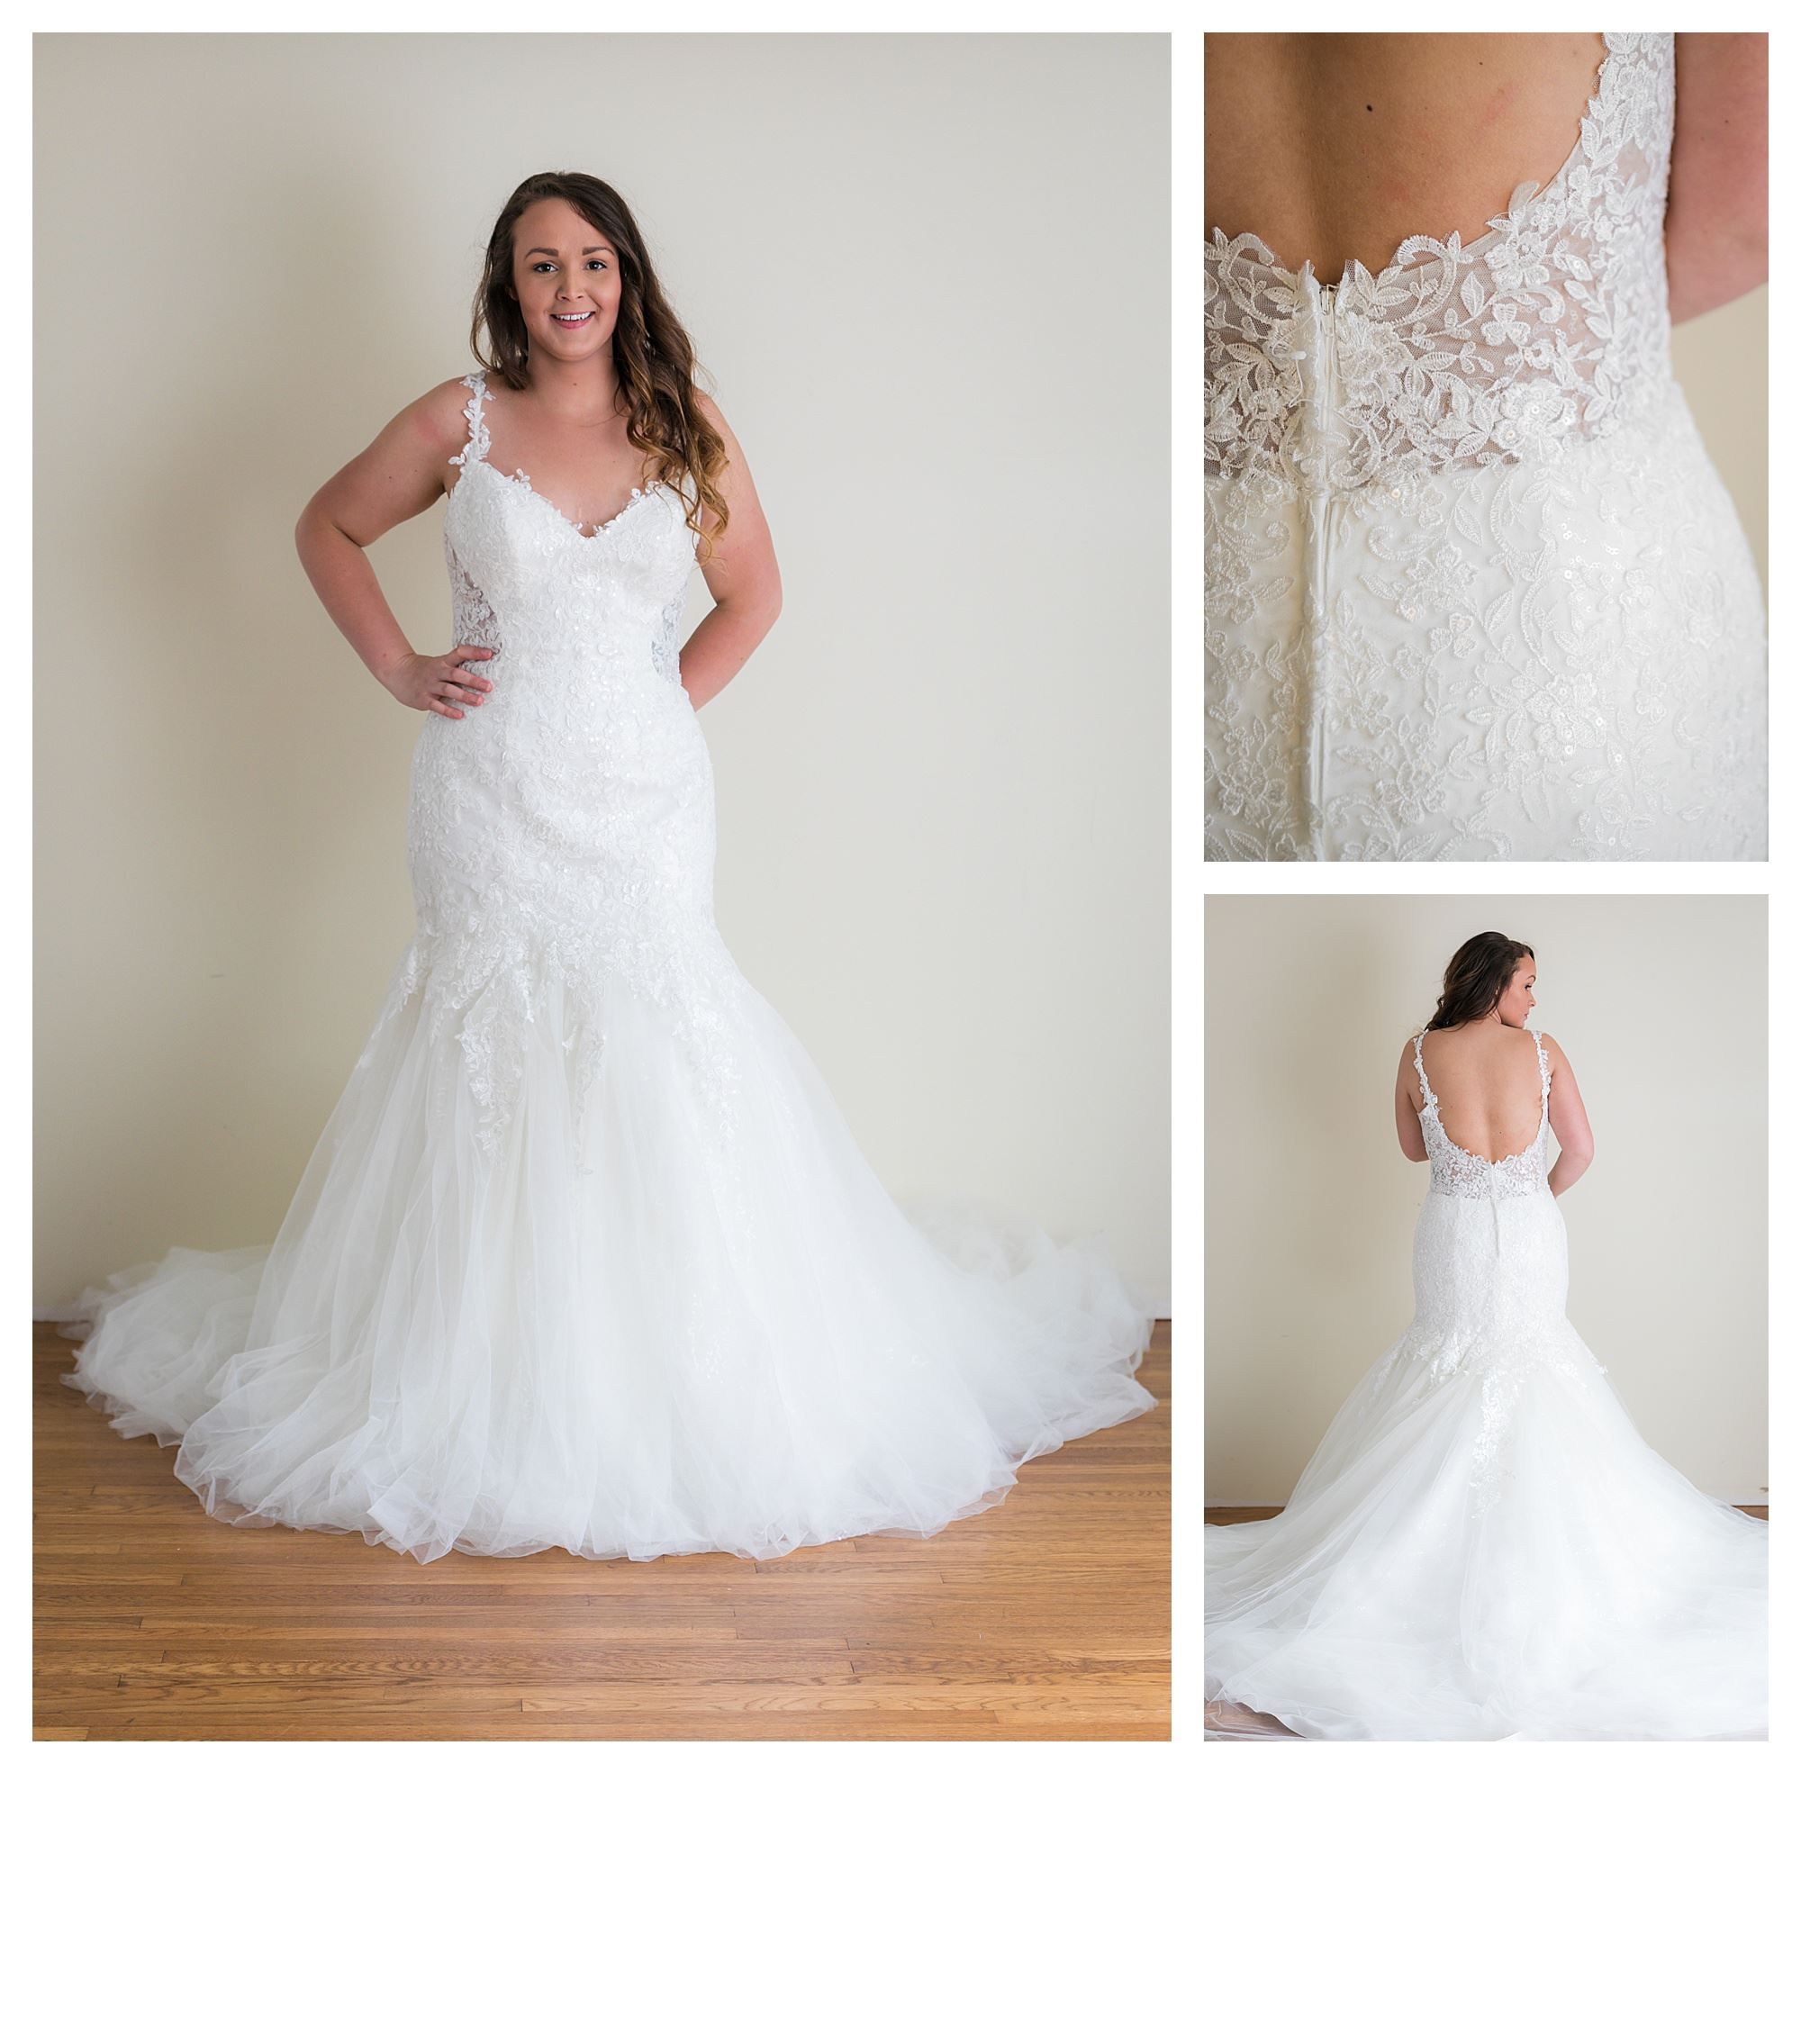 Samara - Size 12 - Ivory - Originally priced $1799 - Sample box price $1199